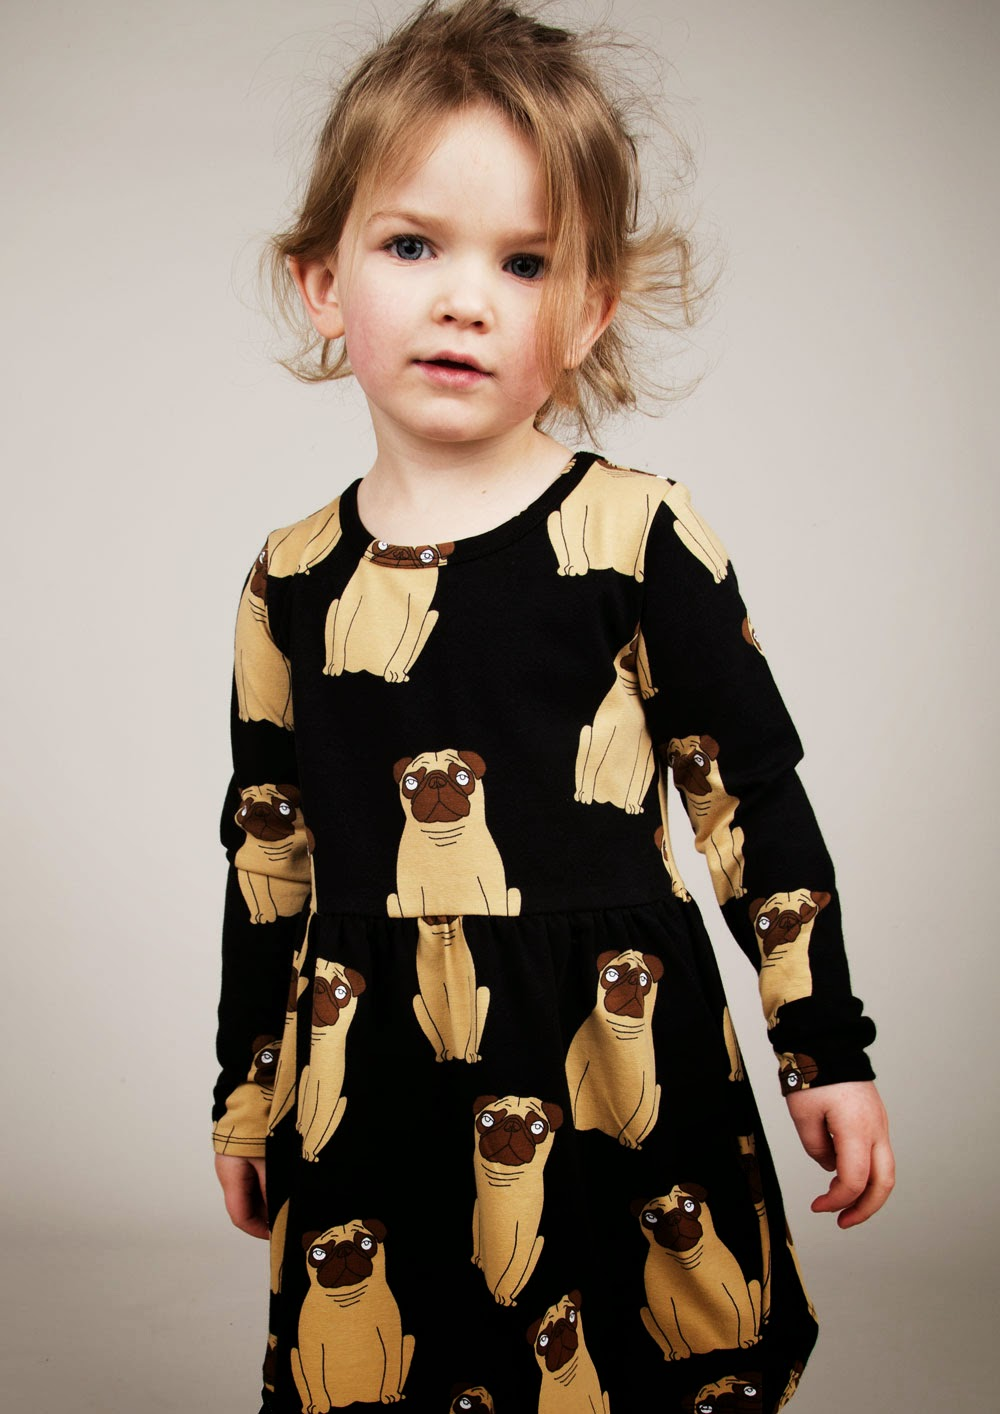 Dress with french bulldog print by Mini Rodini for Autumn/Winter 2014 kids fashion collection